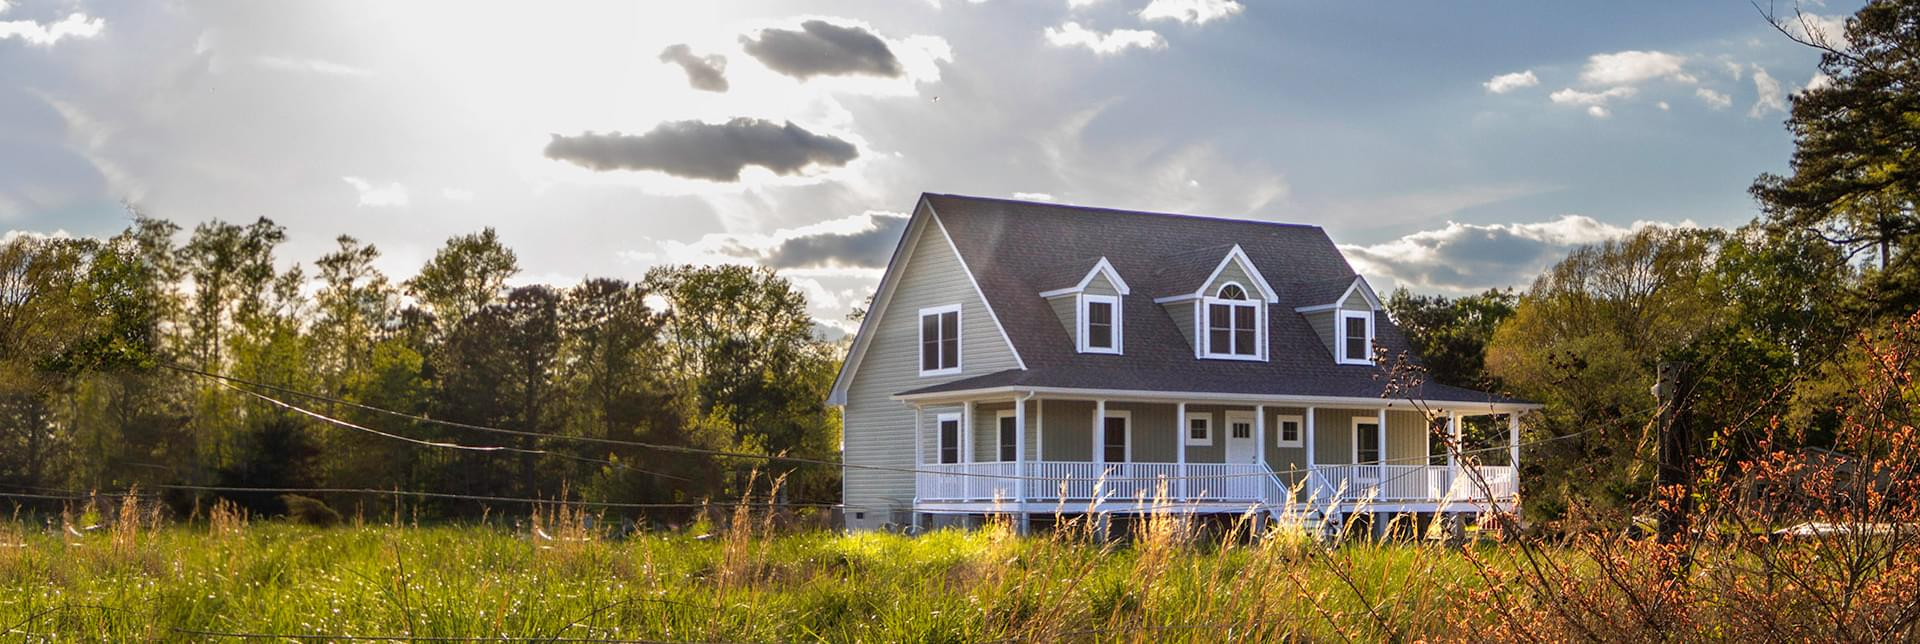 New Homes in Westmoreland County VA